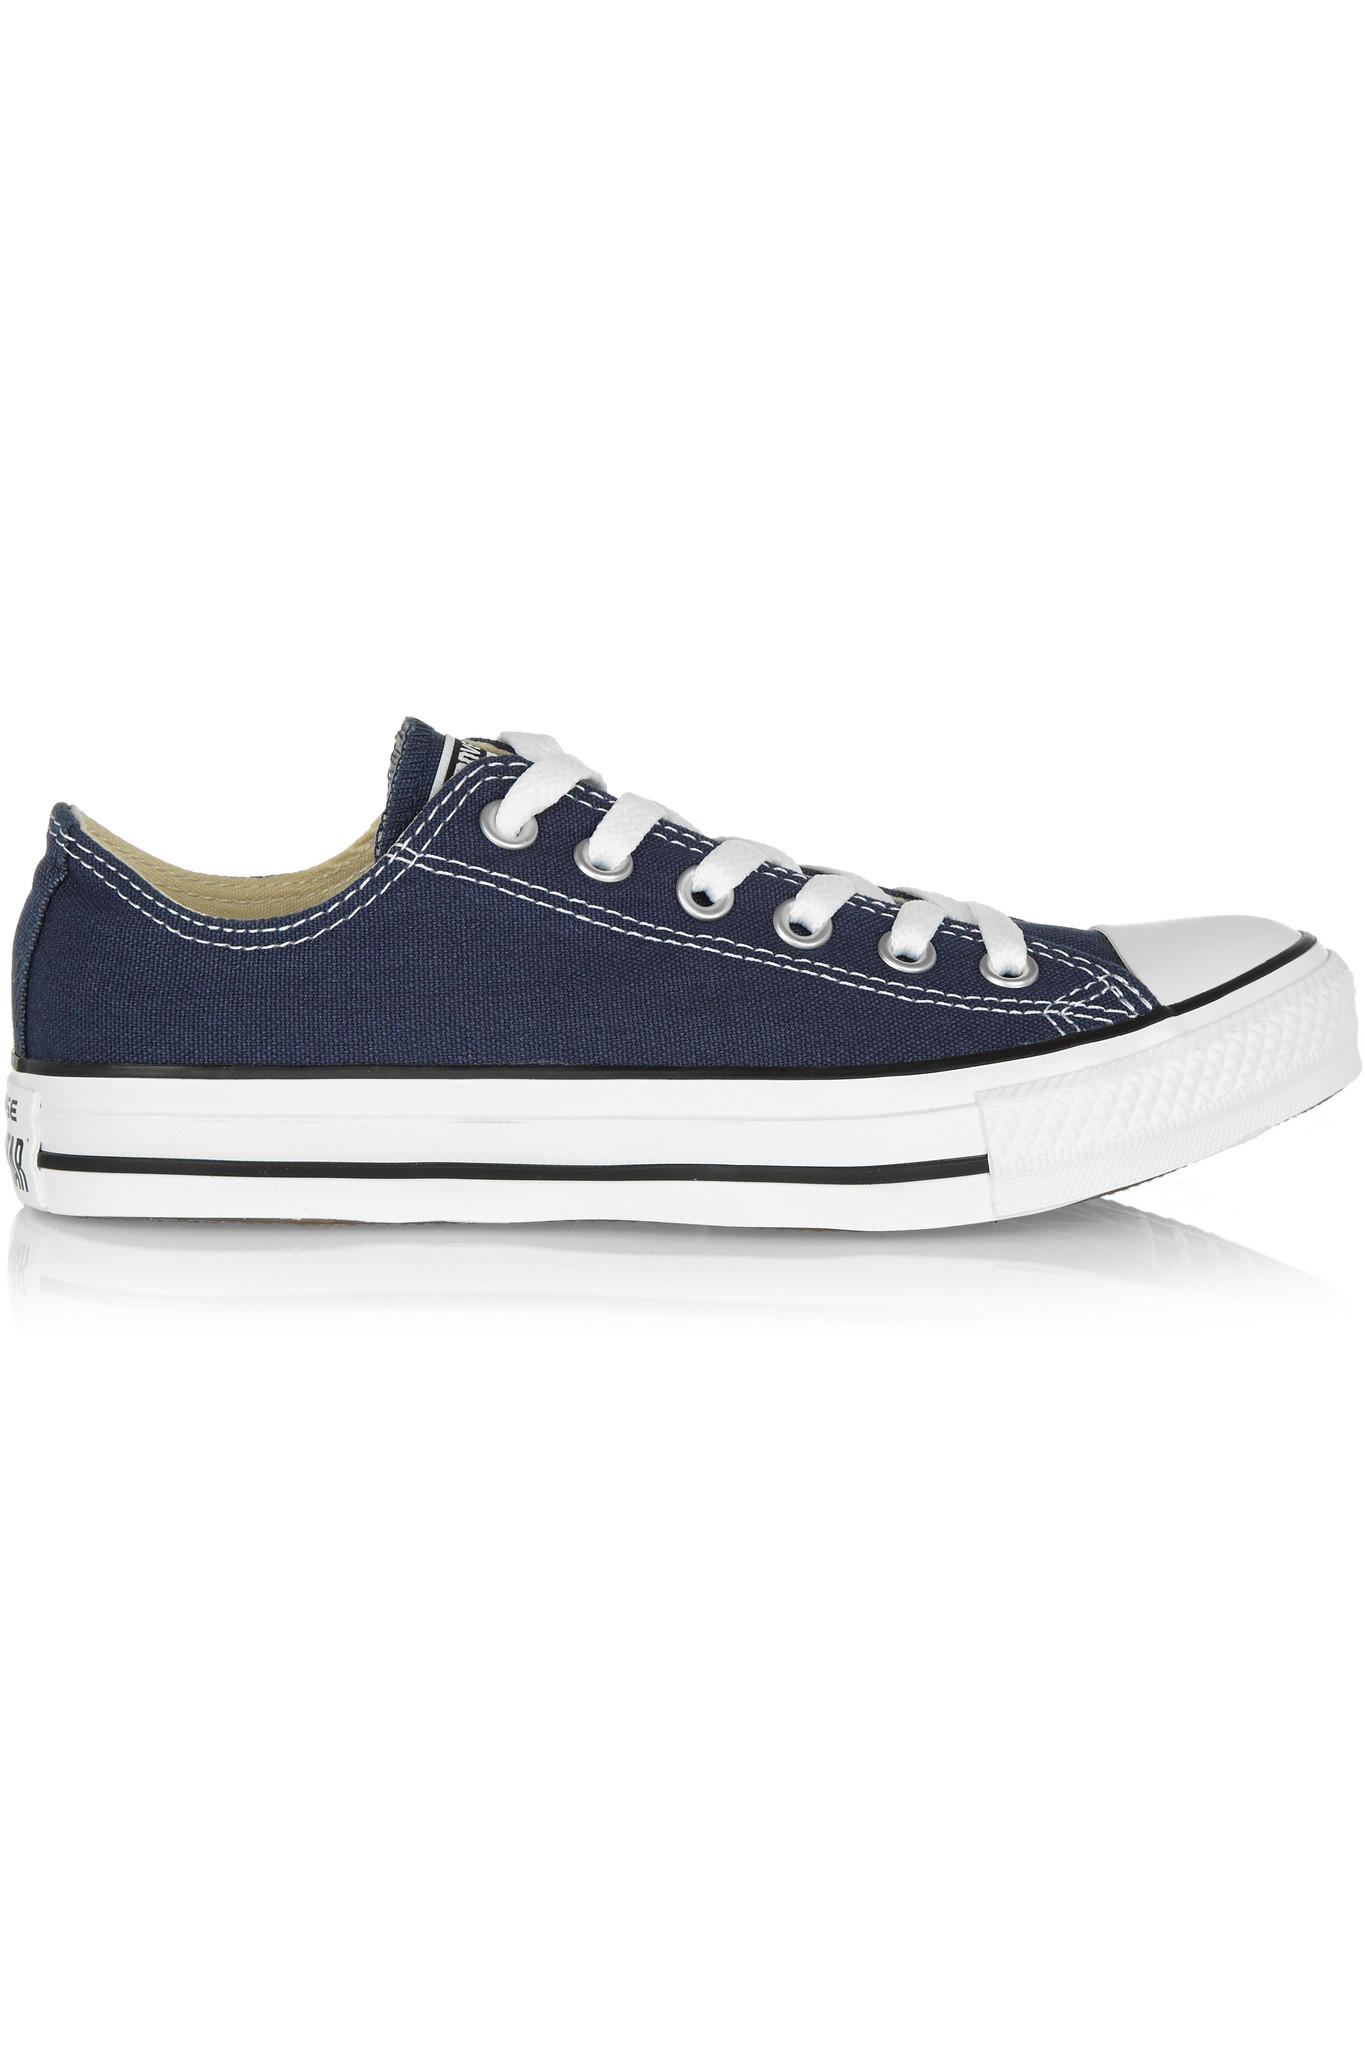 Converse Chuck Taylor All Star Canvas From Net A Porter